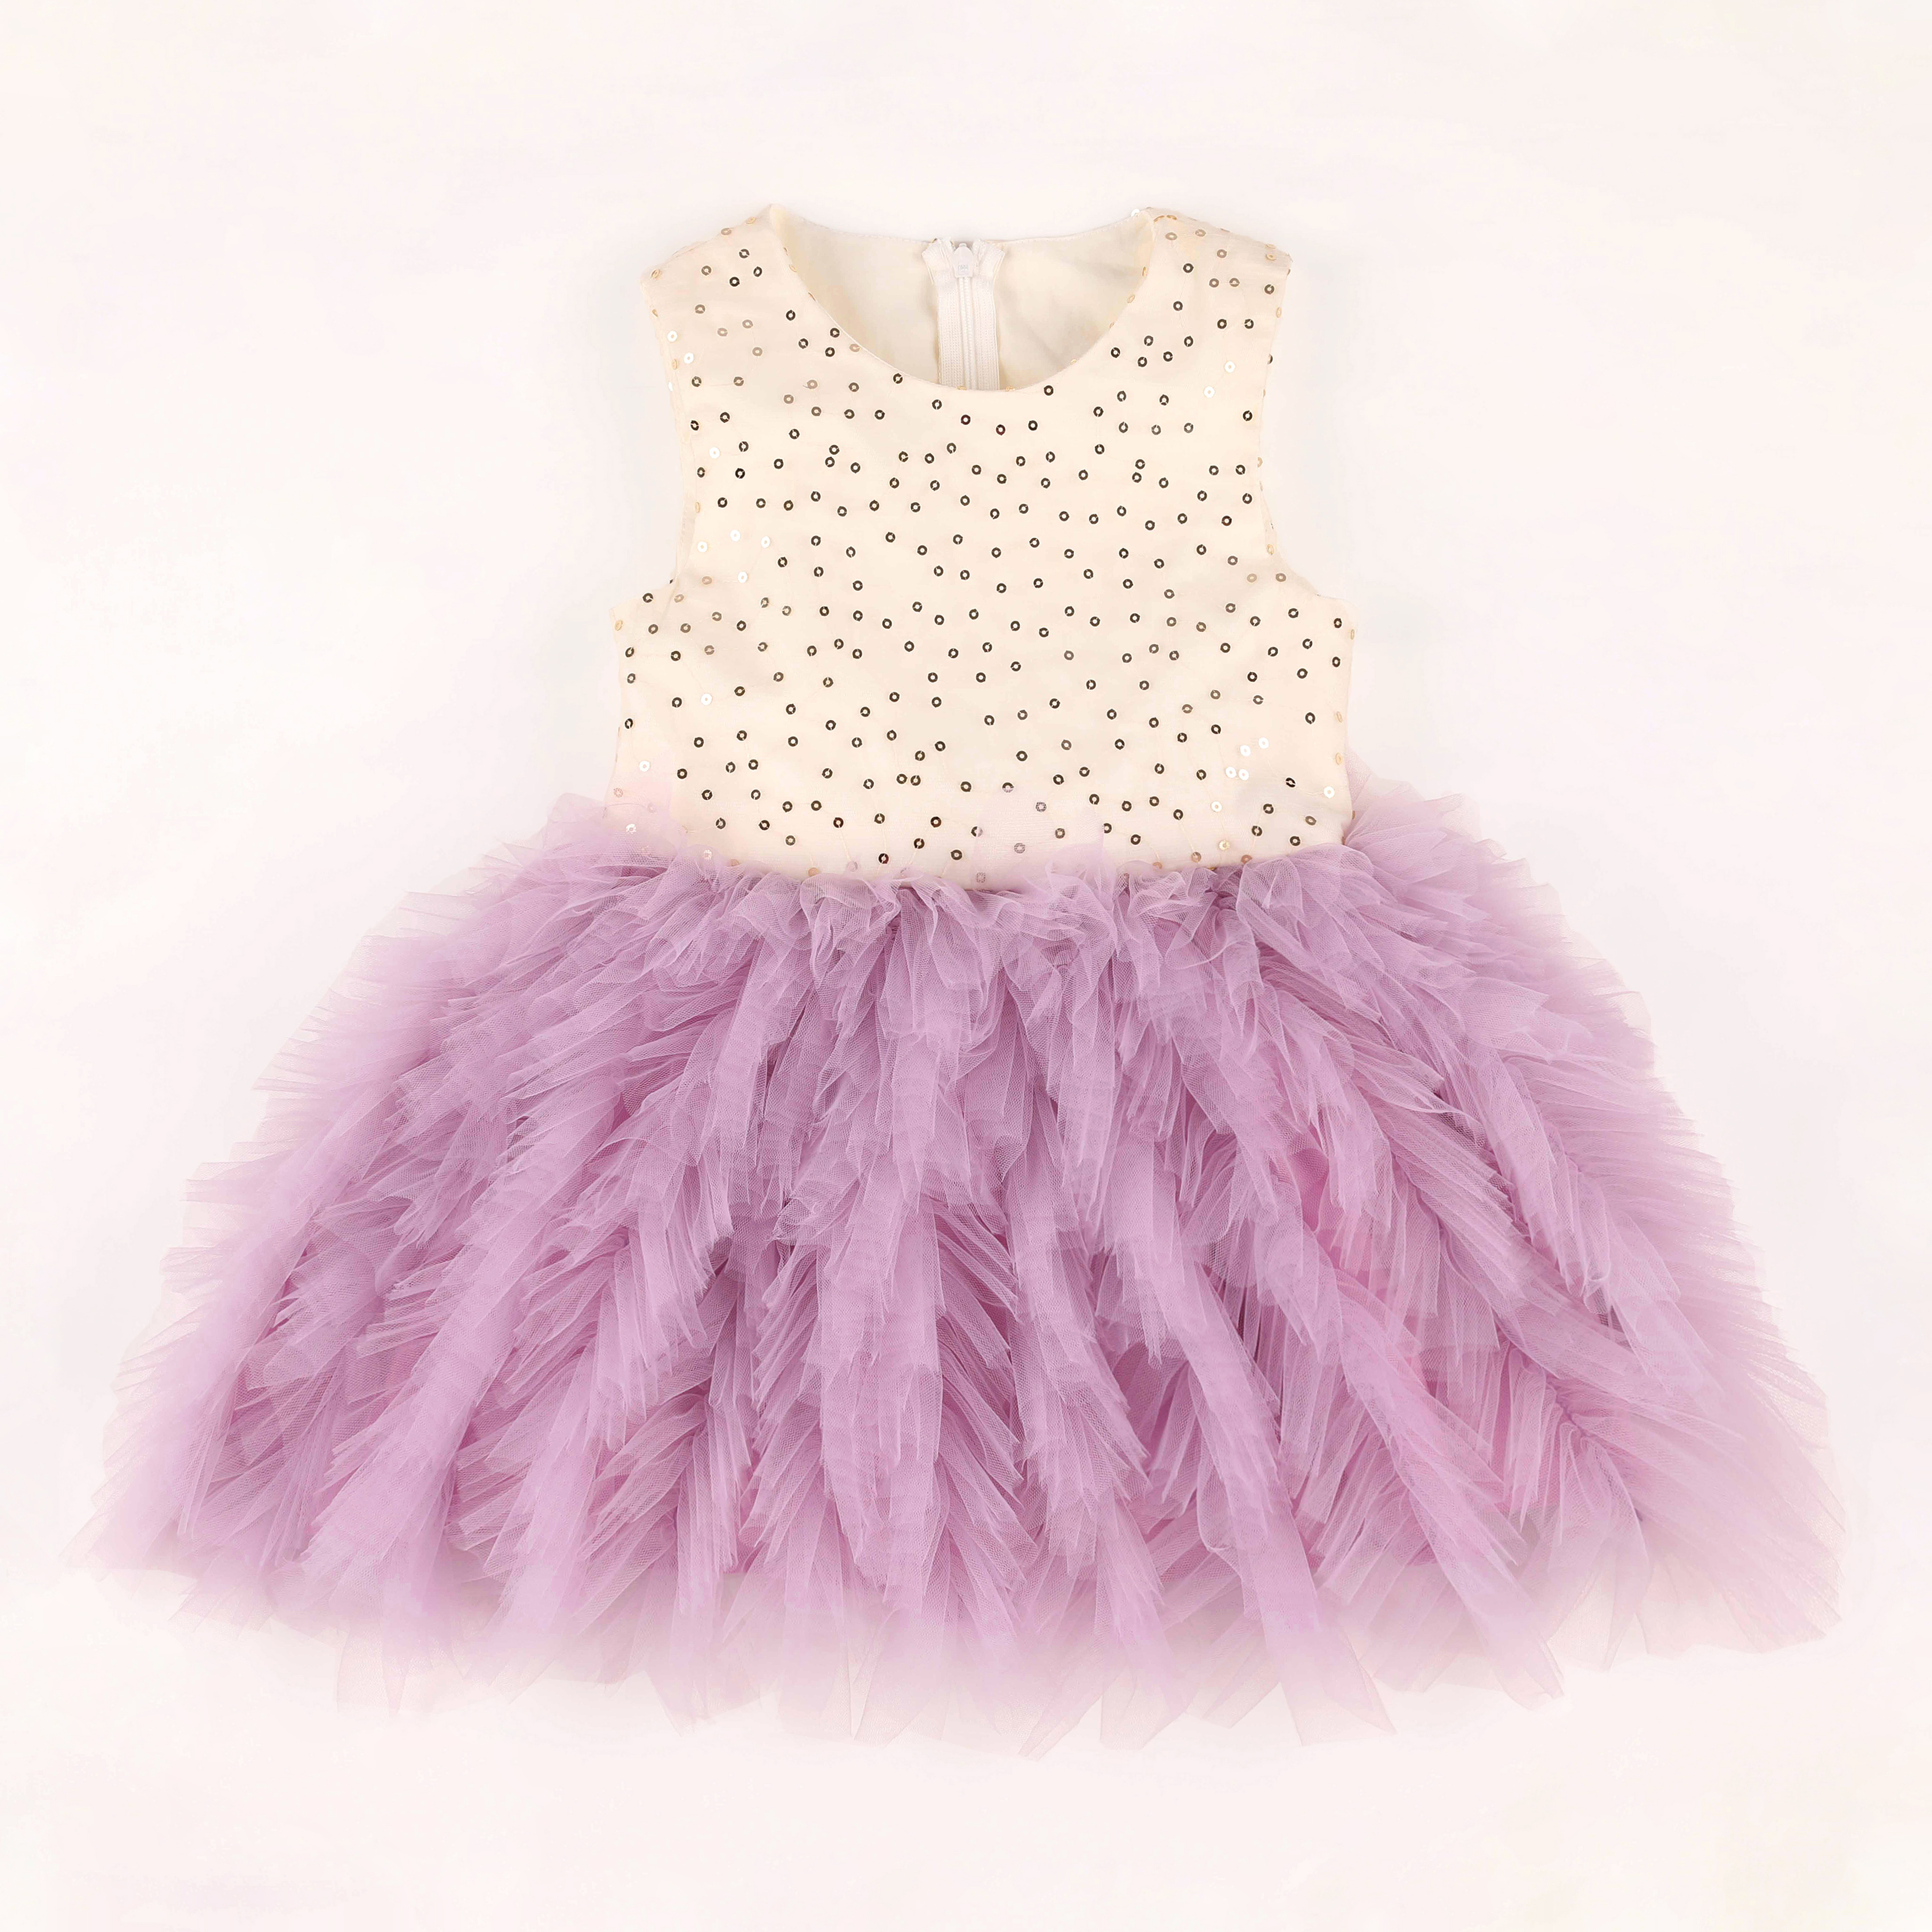 2021 Baby Girl Tutu Dress Costume For Kids Sleeveless Christening Tulle Sequined Wedding Party Princess Toddler Clothes 6